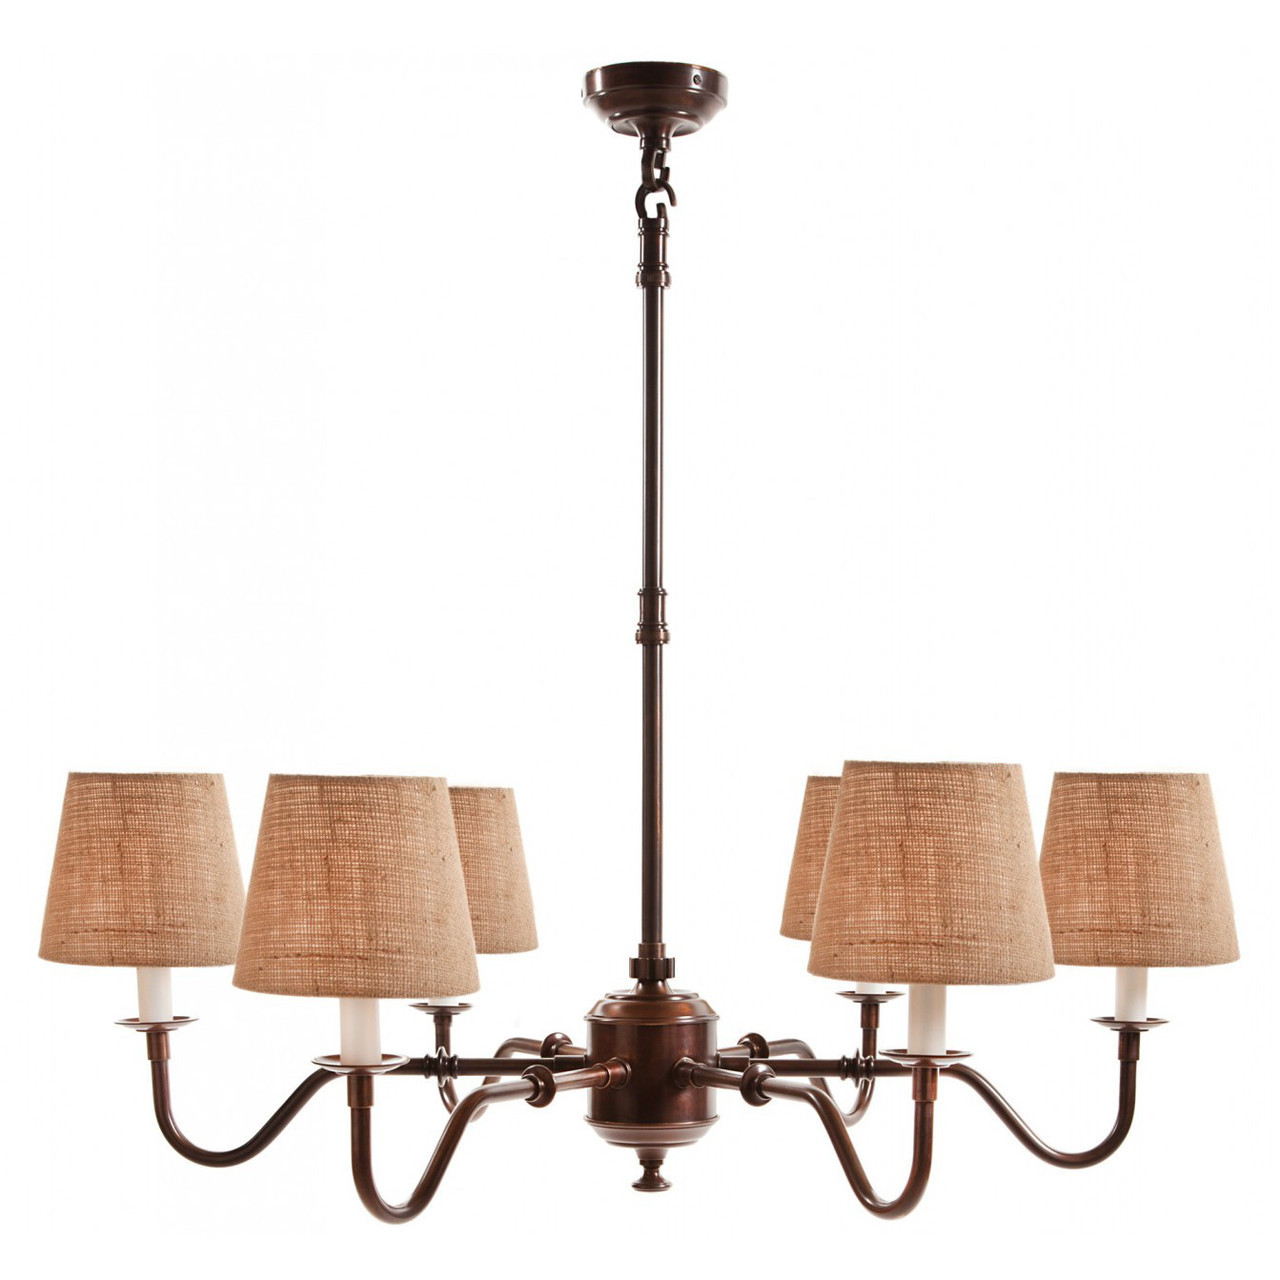 Prescot 6 Arm Antique Copper Chandelier. Loading zoom - Prescot 6 Arm Antique Copper Chandelier - Zest Lighting